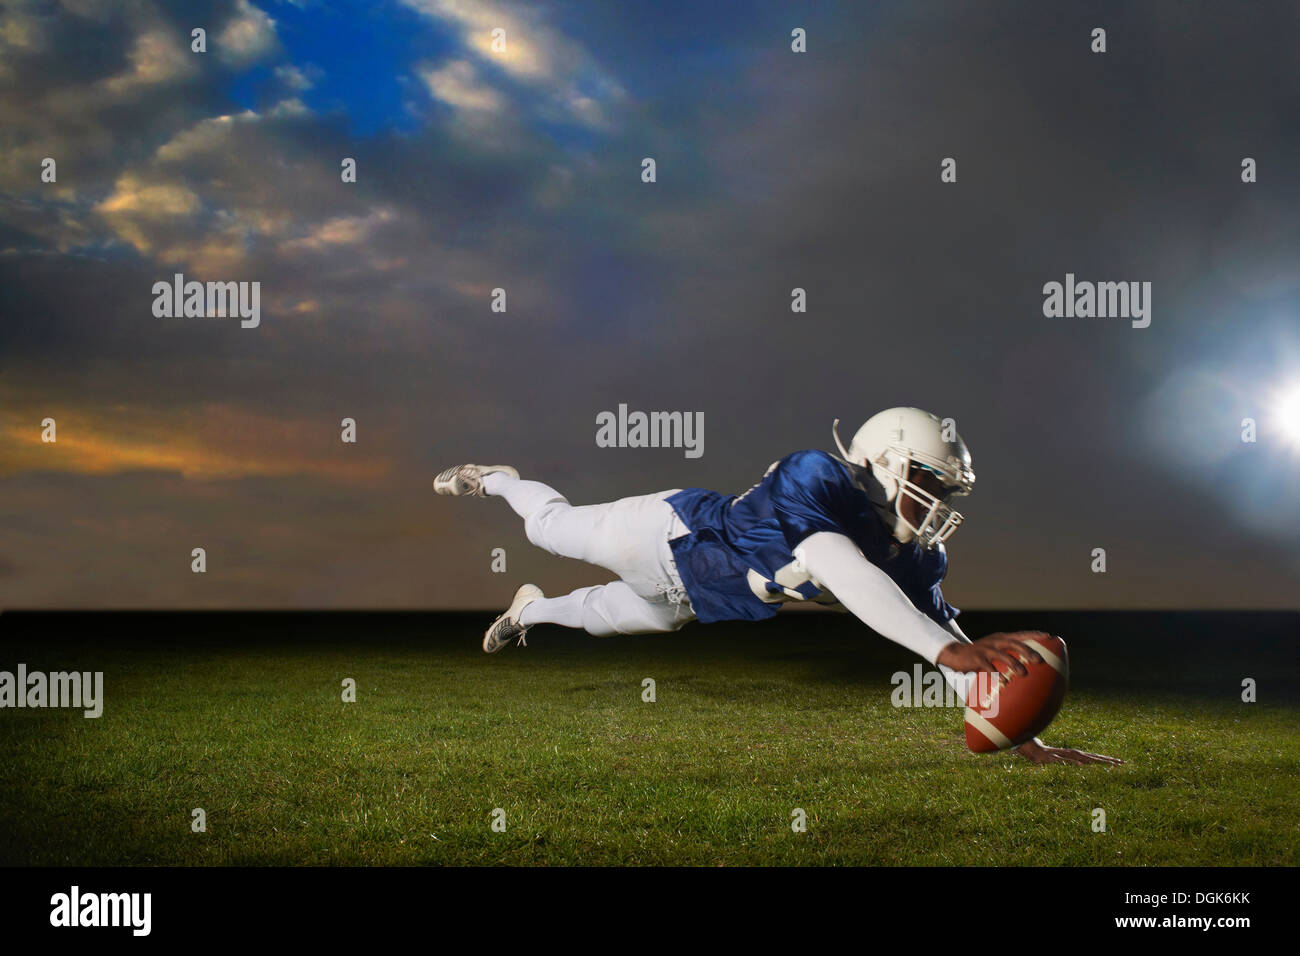 American football player reaching for touch down - Stock Image